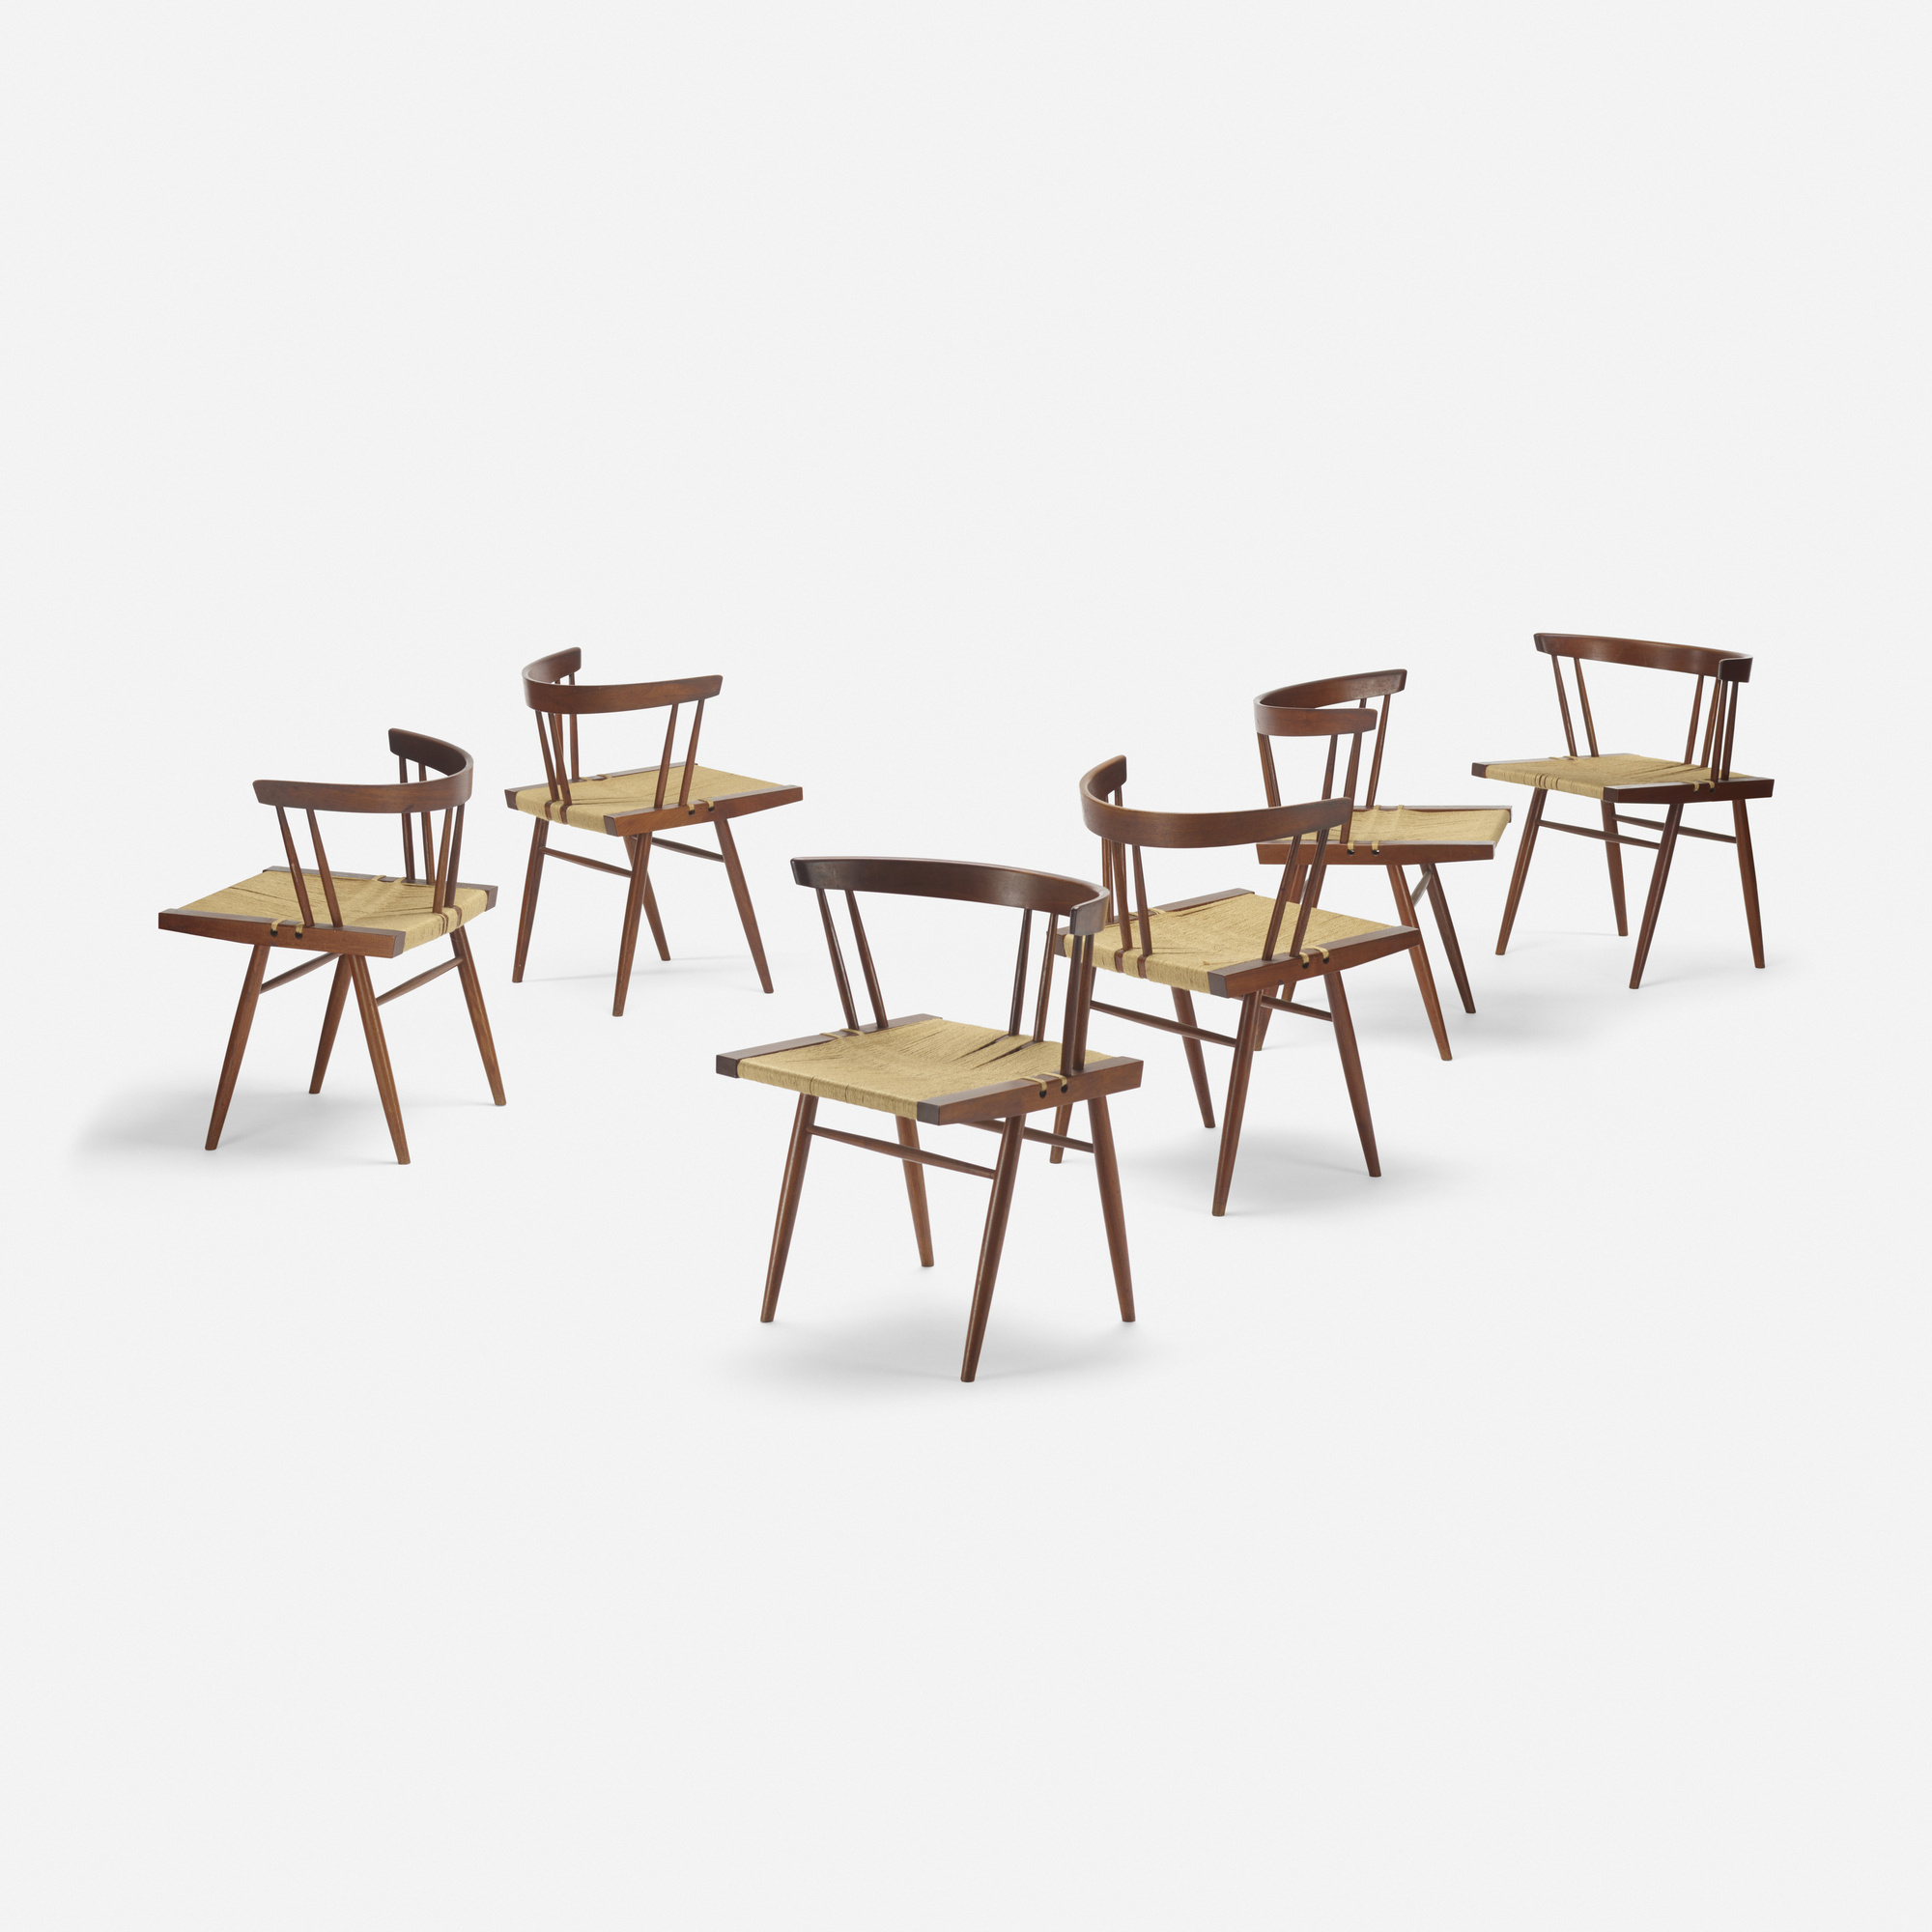 132: George Nakashima / Grass-Seated chairs, set of six (2 of 3)